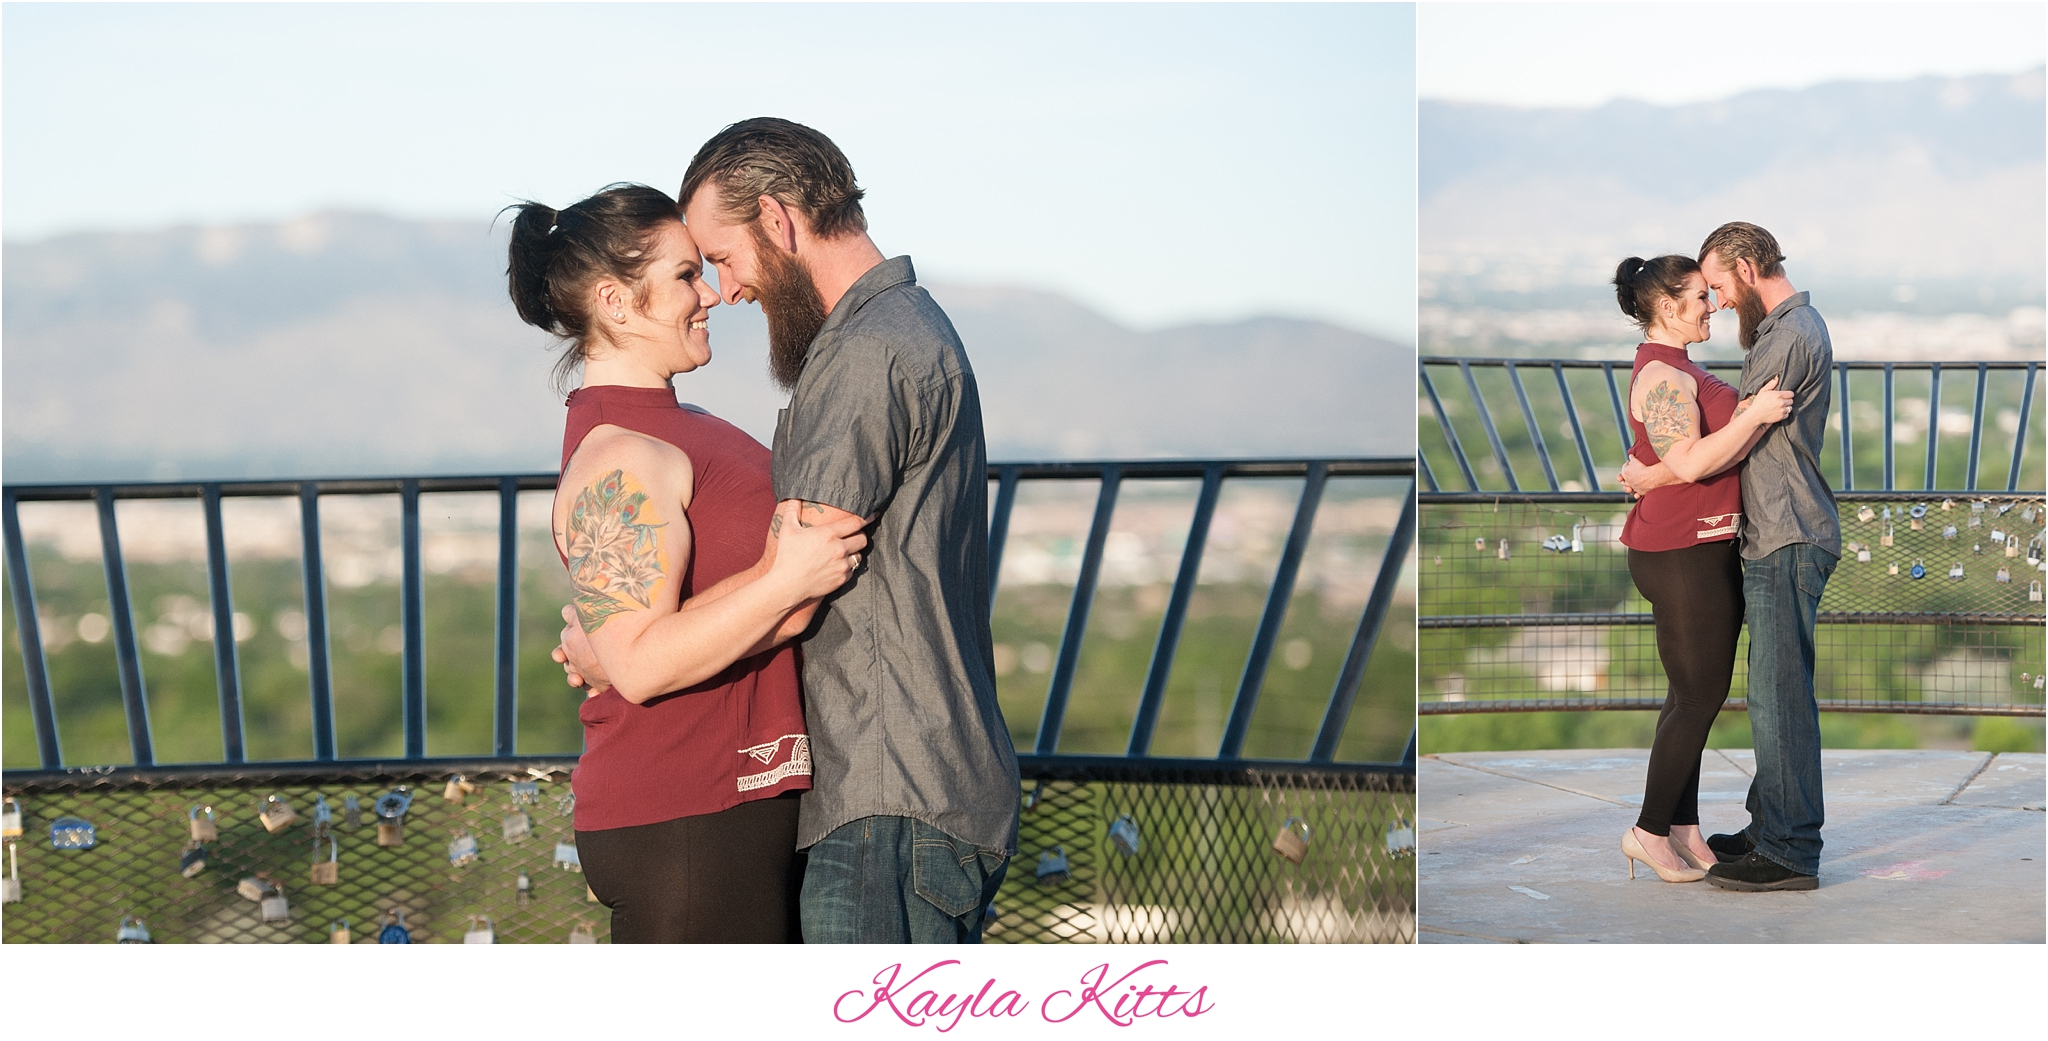 kayla kitts photography - albuquerque wedding photographer - albuquerque engagement photographer - nm wedding - albuquerque wedding - nm wedding - unm engagement - bosque engagement session_0013.jpg